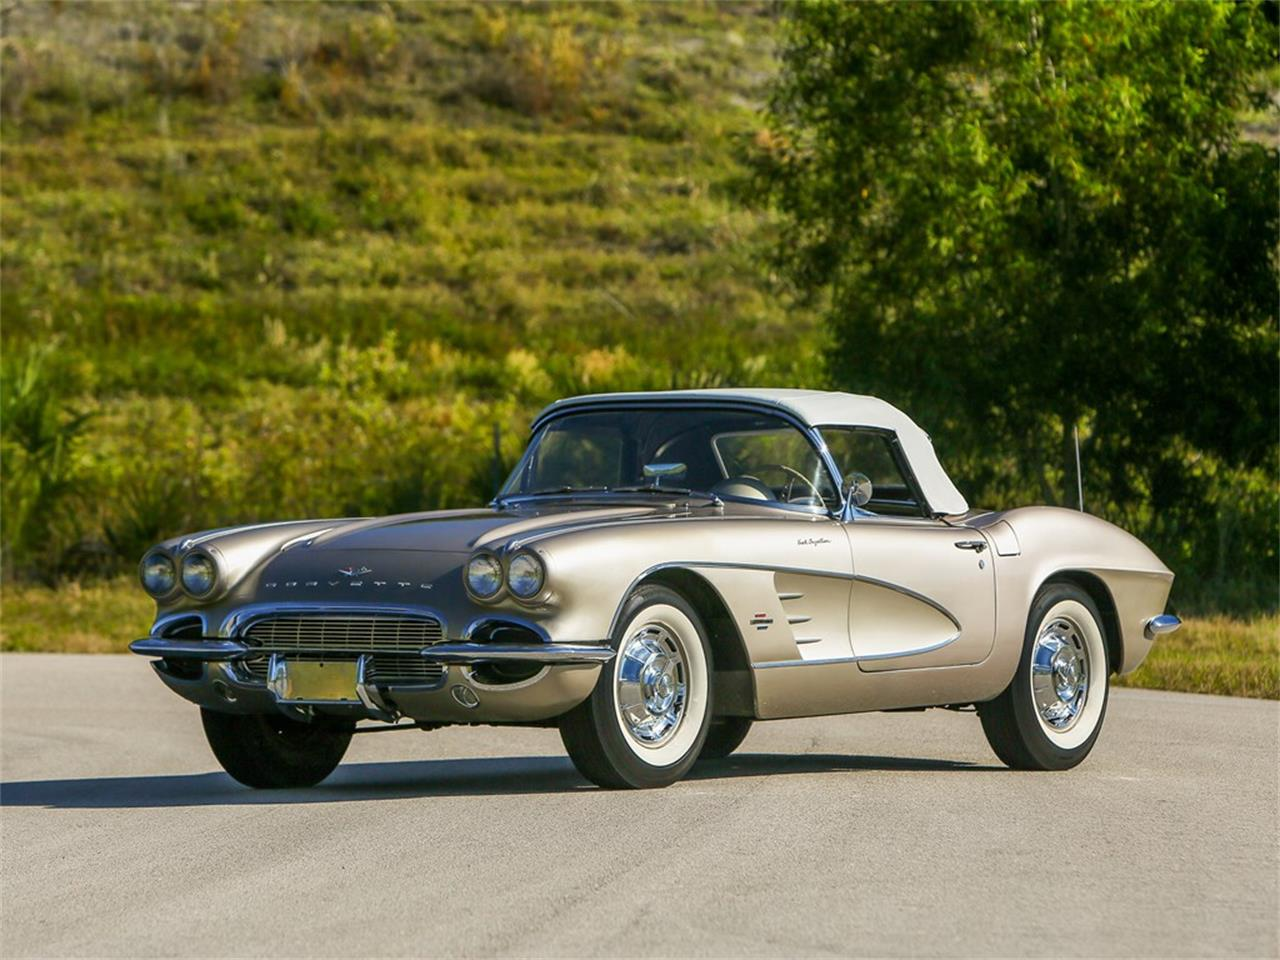 Large Picture of '61 Corvette located in Florida Auction Vehicle Offered by RM Sotheby's - PIVI